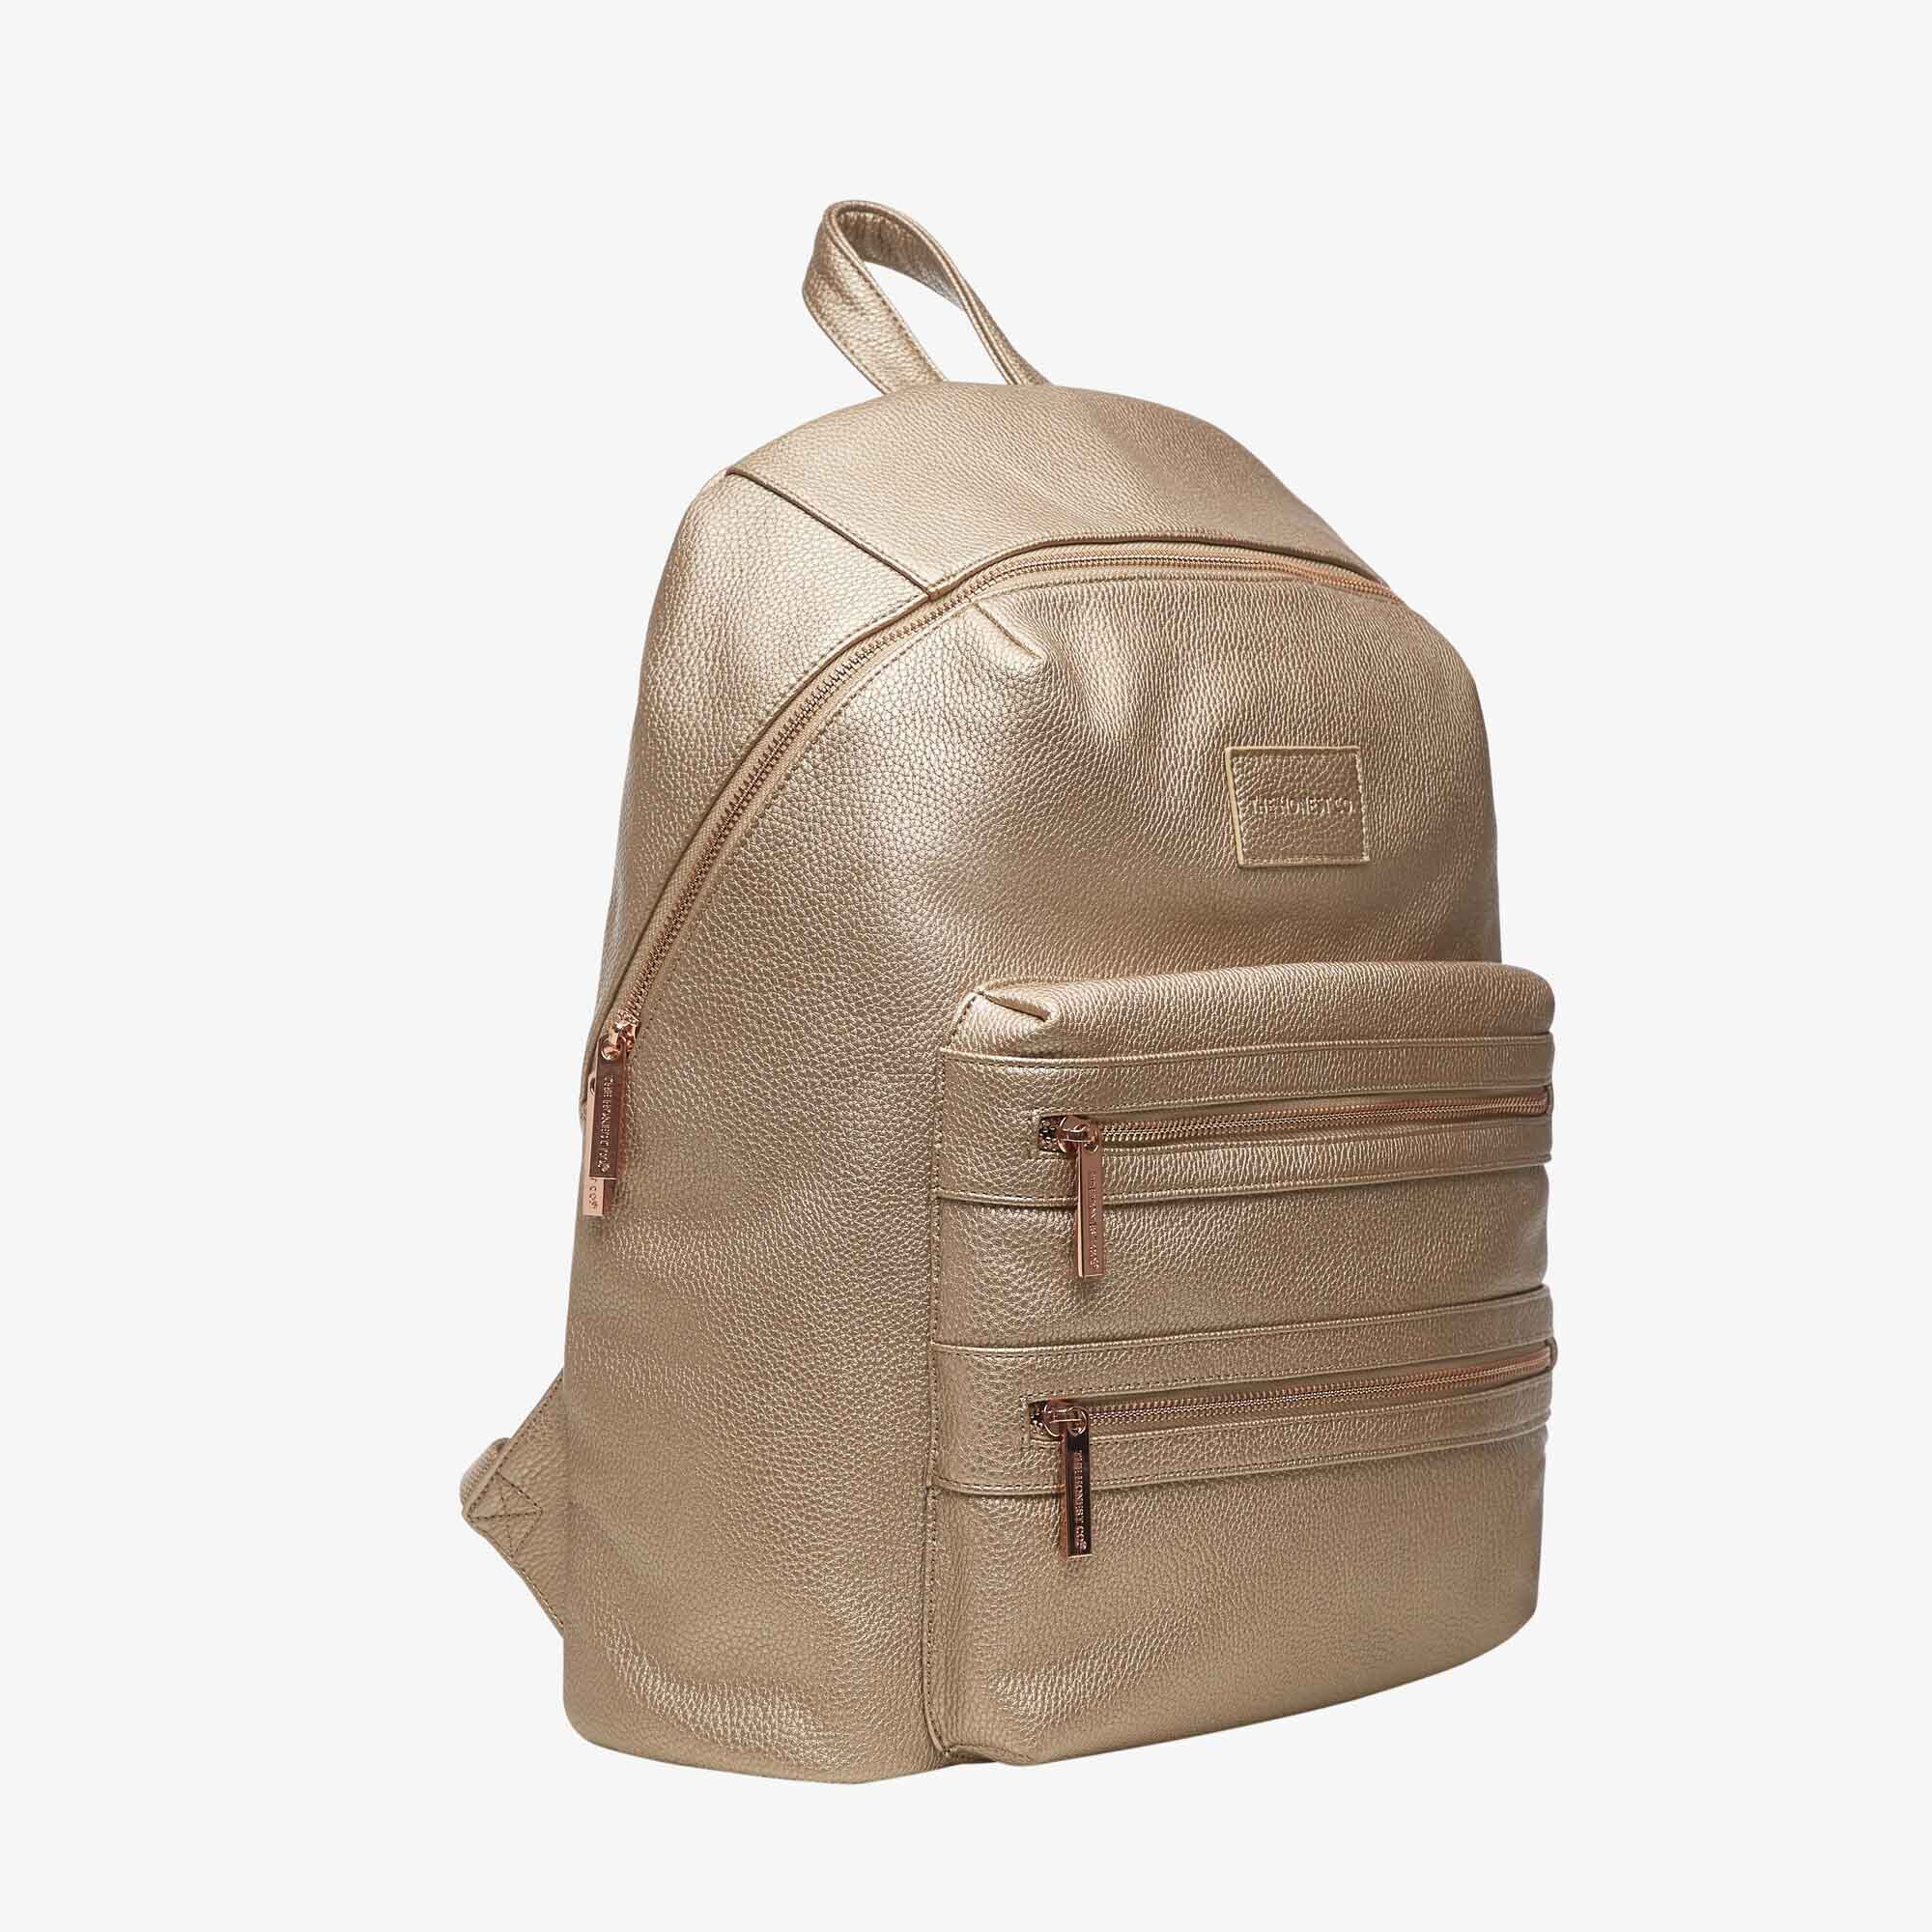 Honest™️ City Backpack - Champagne